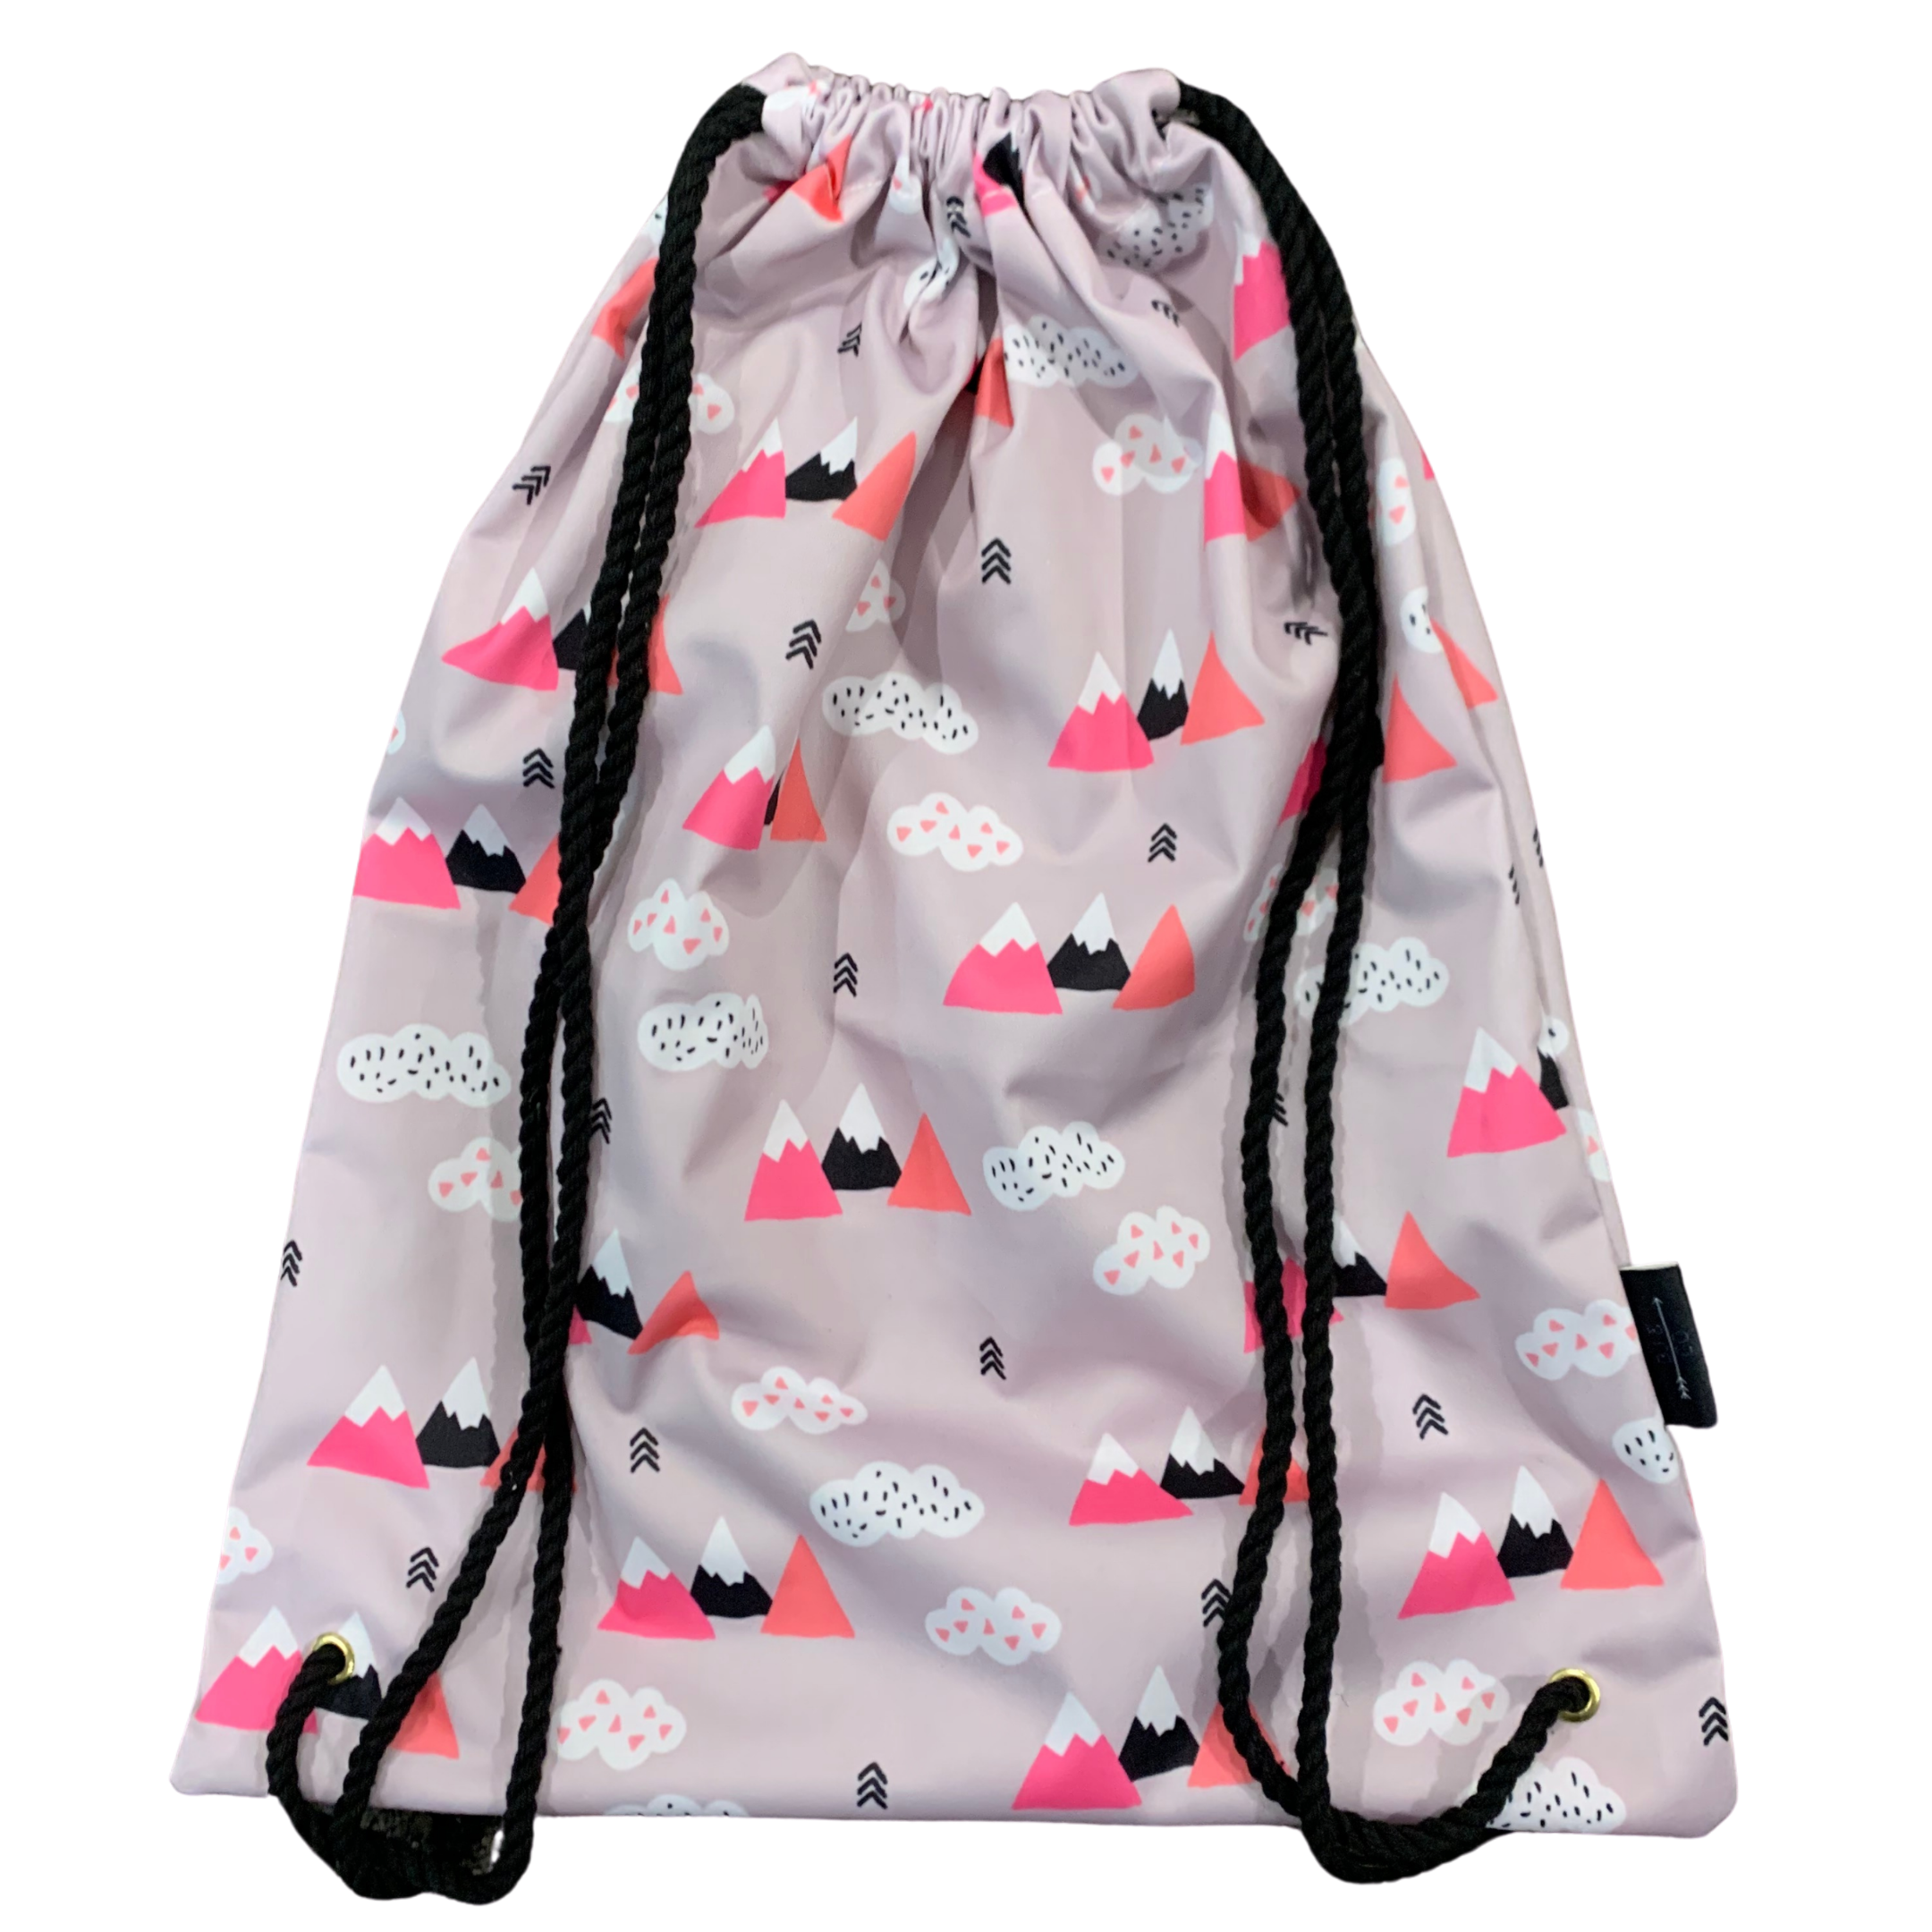 waterproof swimming bag wet bag pink geometric mountains